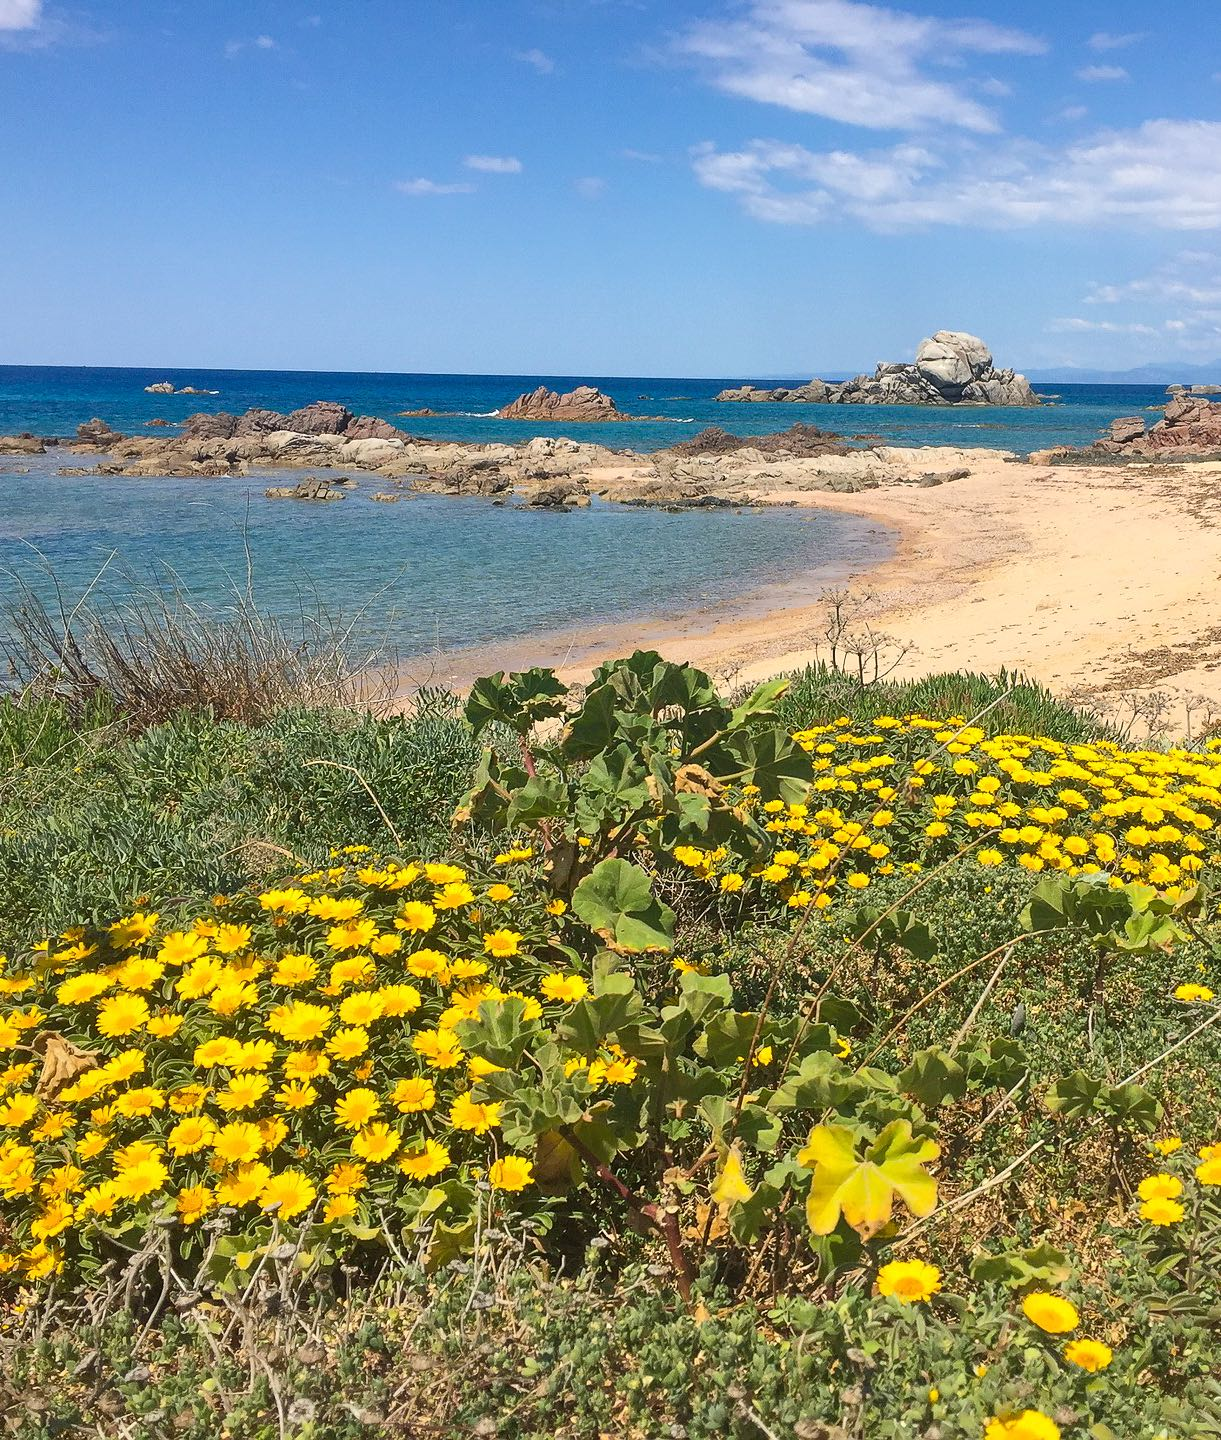 View of a beach with yellow flowers in Sardinia